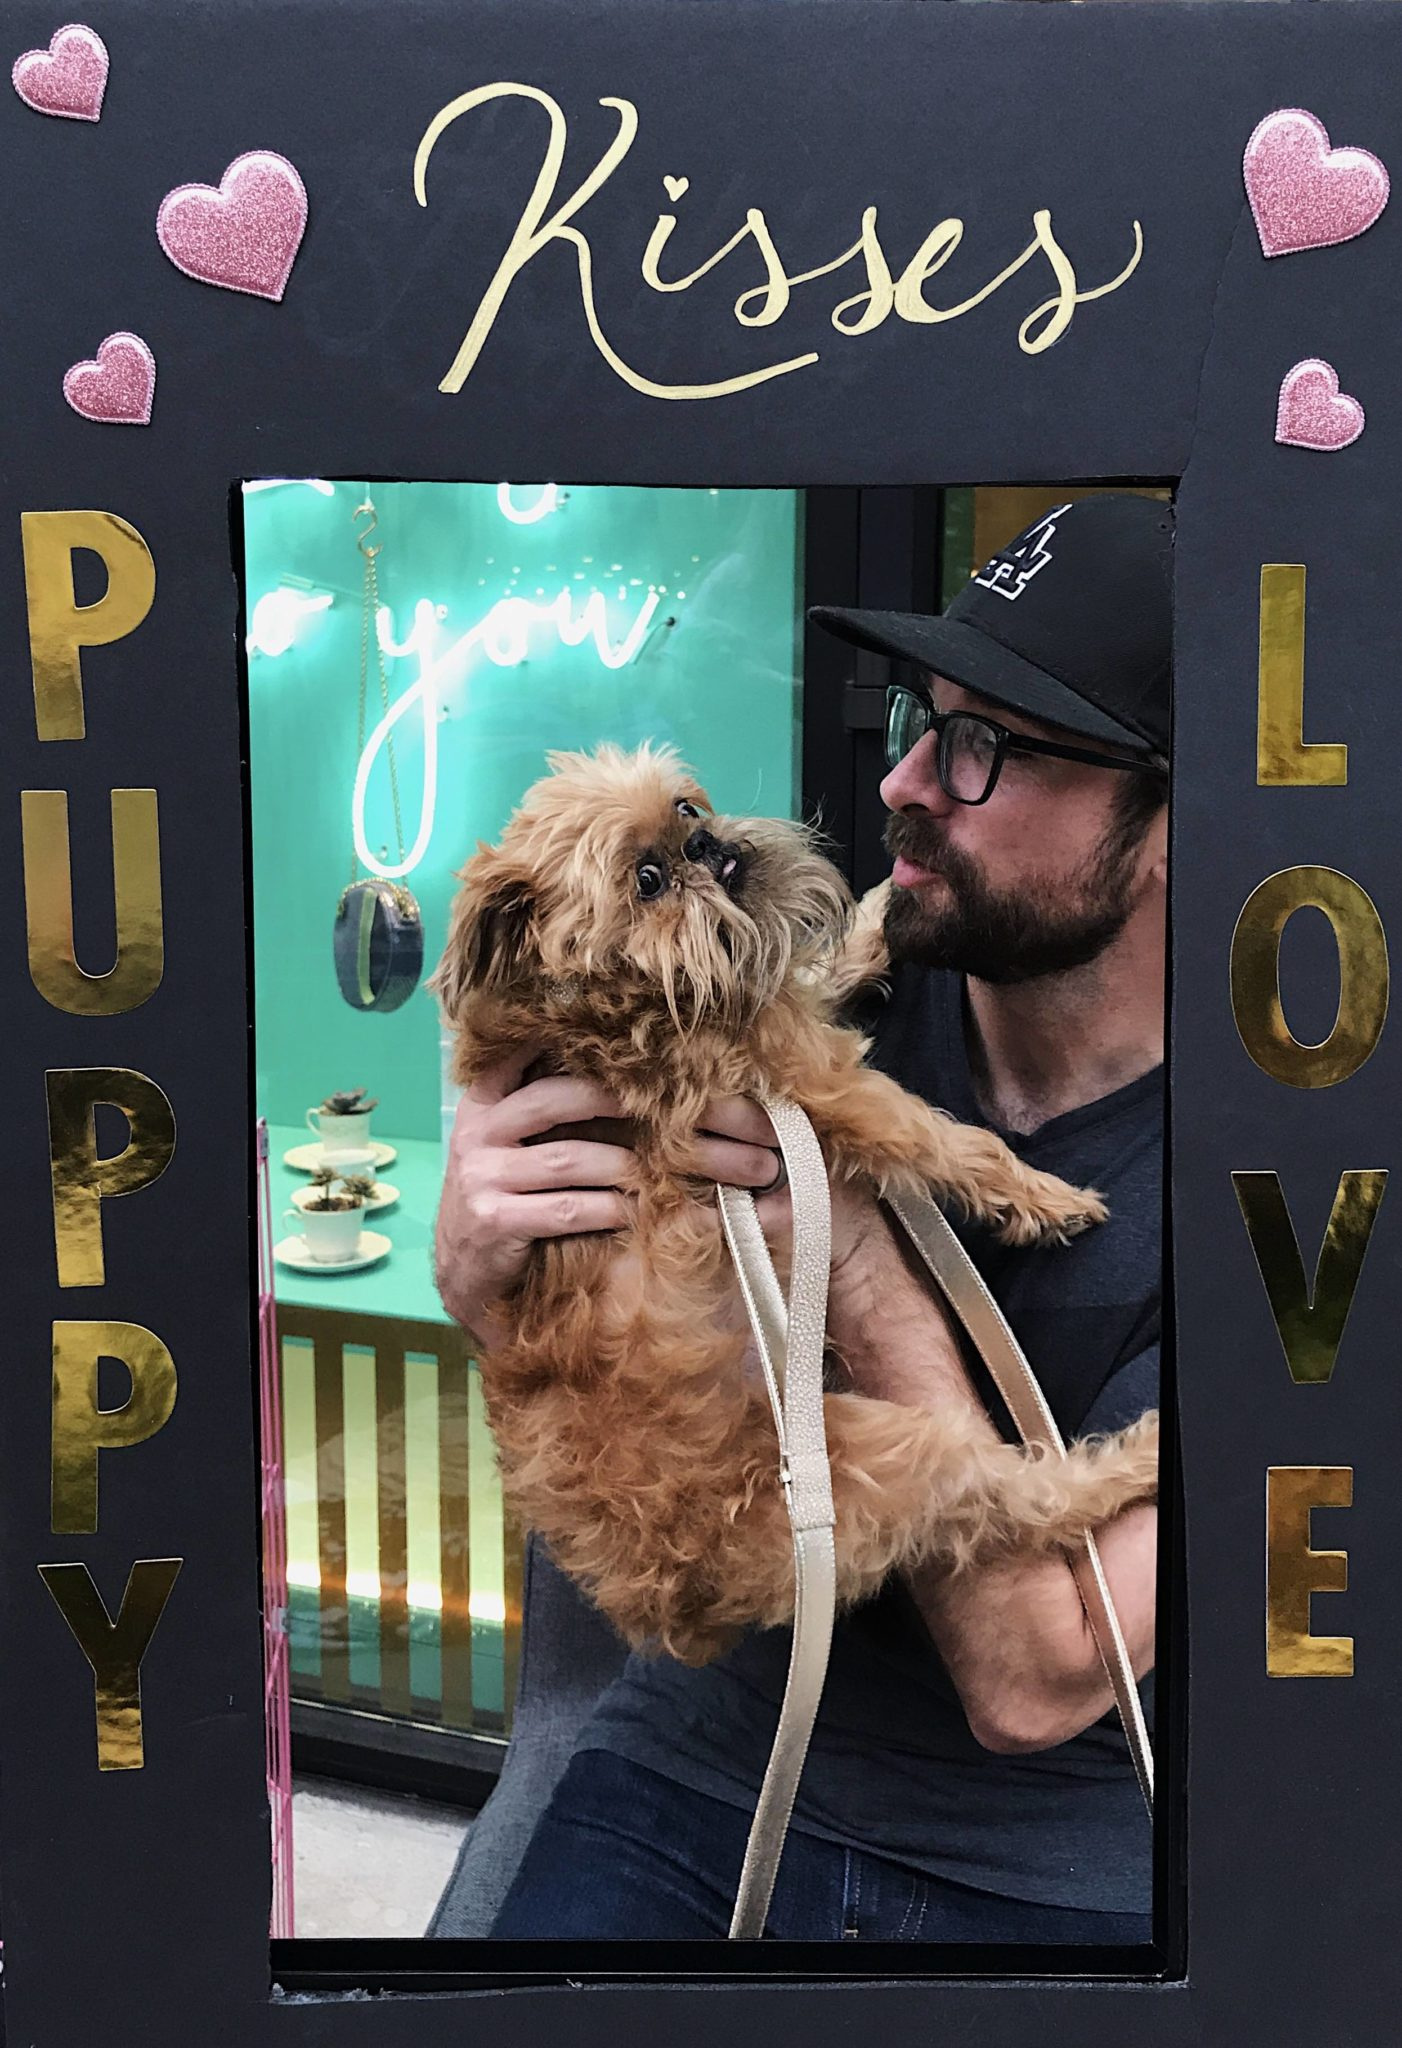 Event recap from the PAWsh Puppy Fashion Show with Kelly Wynne Handbags. Steven Jalapeño and 5 other dogs participated in the Austin Pets Alive runway way show Click for more info and pictures.